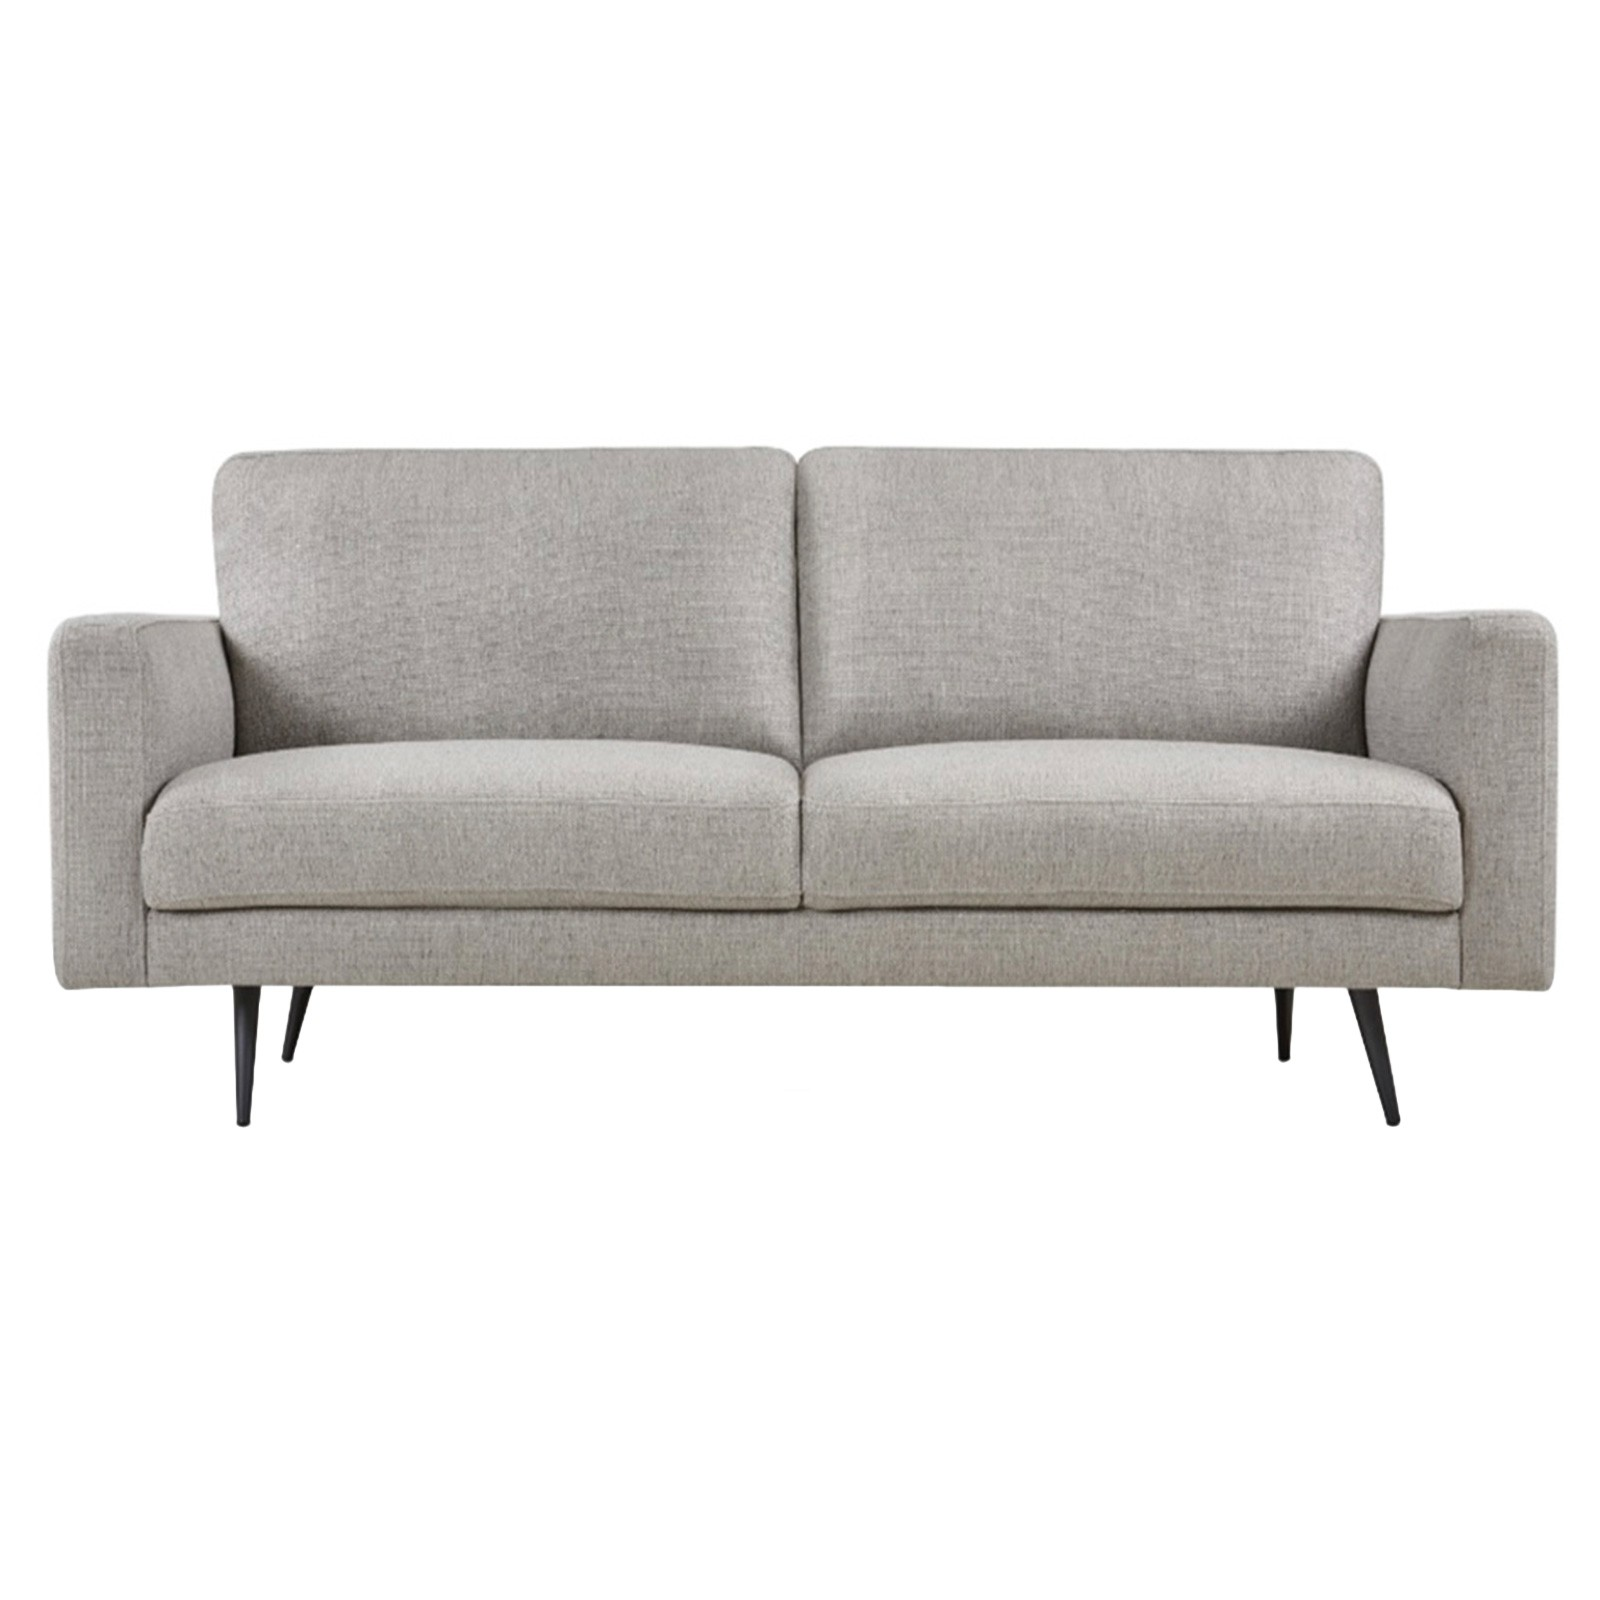 Mariane Fabric Sofa, 2 Seater